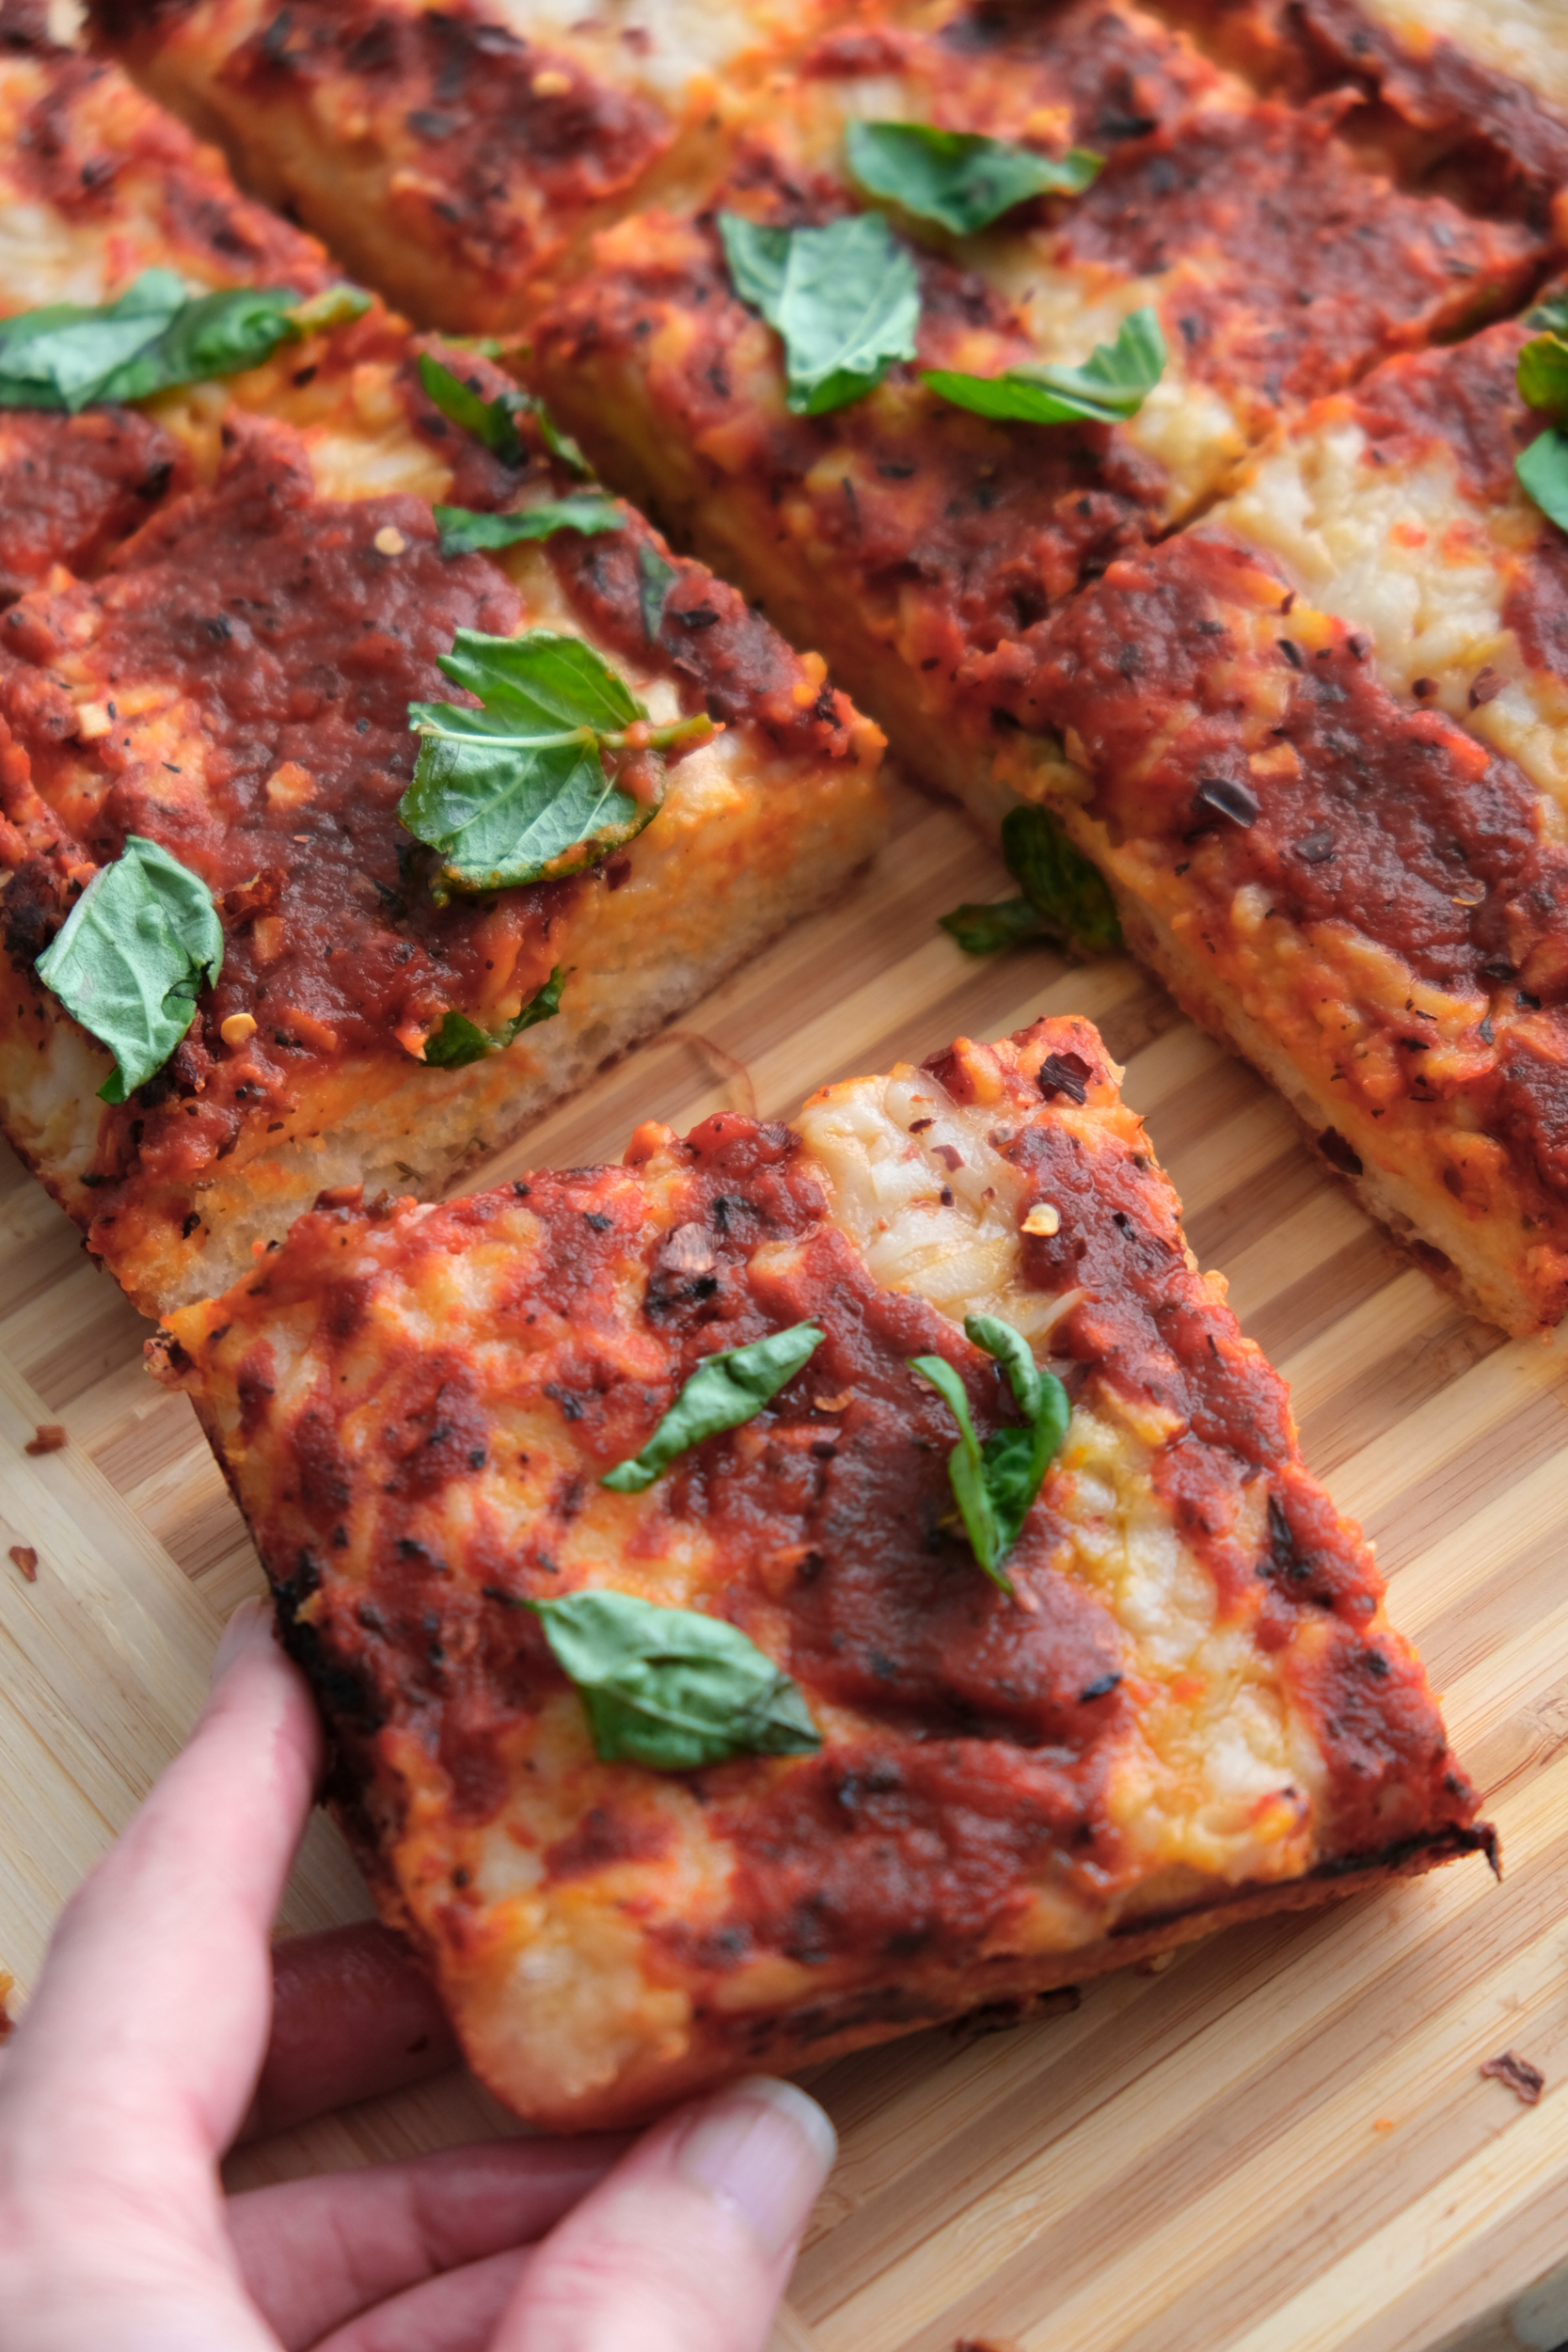 How to Make Detroit-Style Vegan Pizza